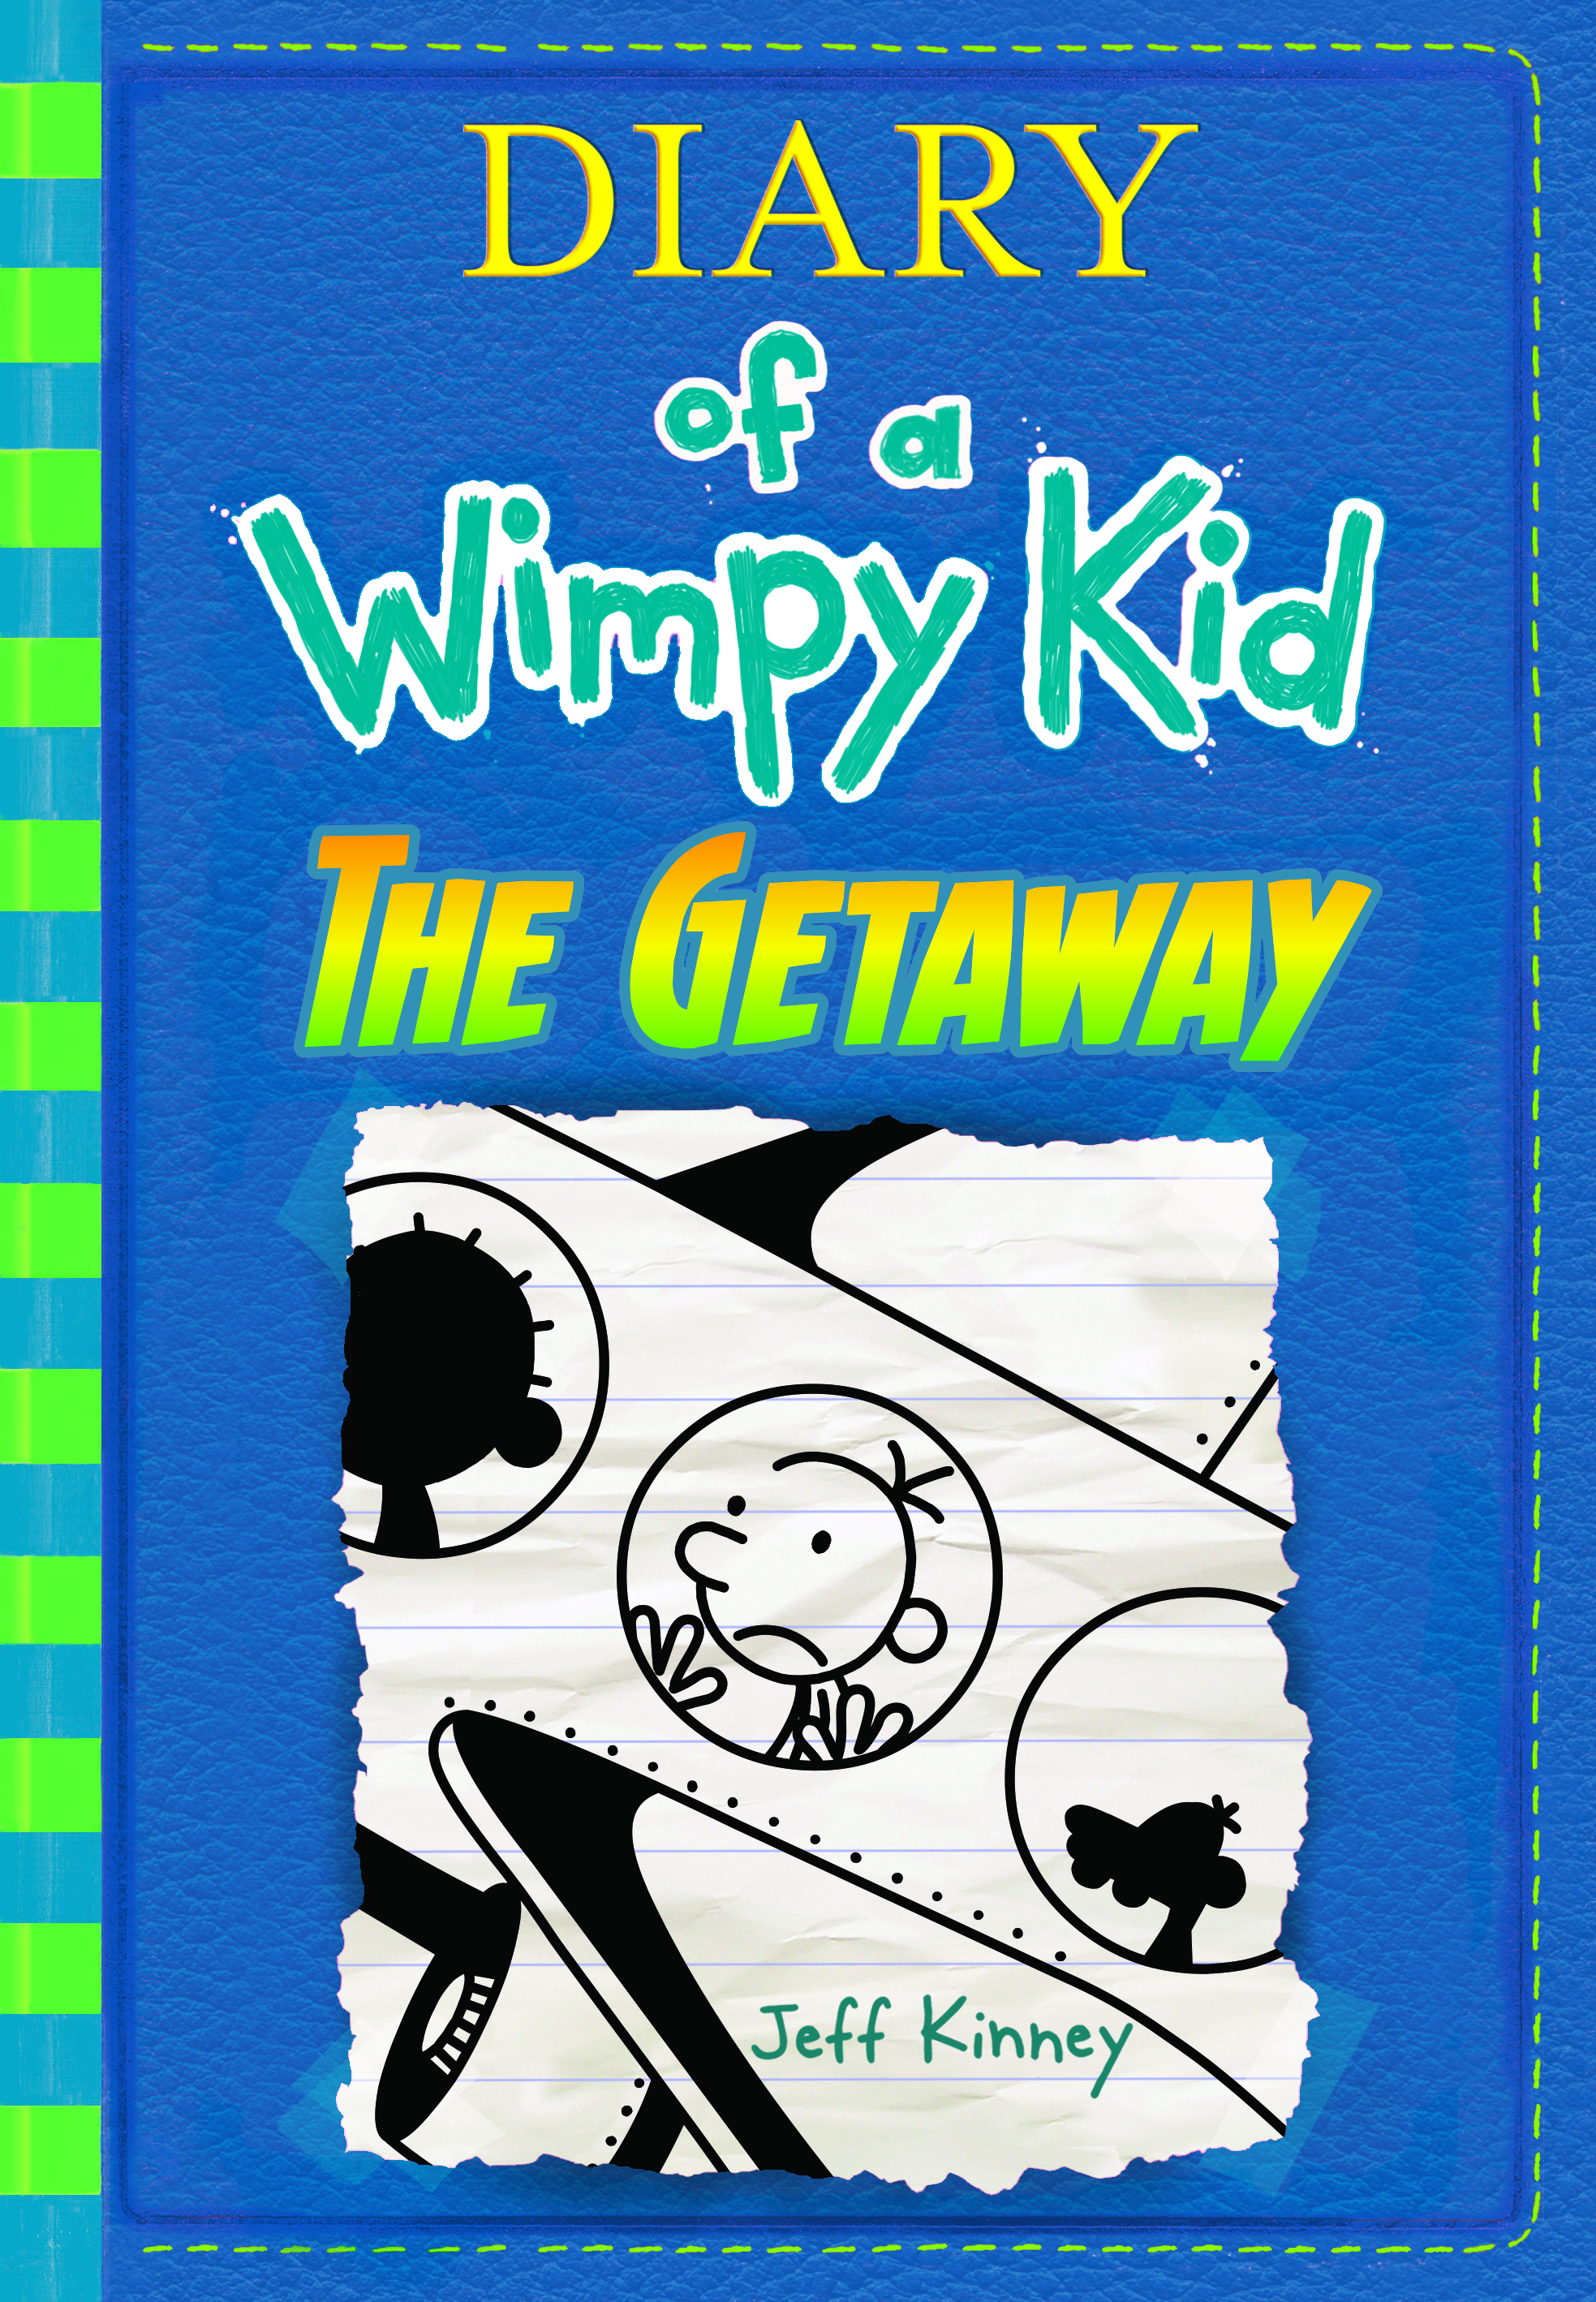 To escape the stress of the holidays,  - the Heffleys decide to get out of town and go to a resort instead of celebrating Christmas at home. But what's billed as a stress-free vacation becomes a holiday nightmare.Jeff Kinney is a #1 New York Times bestselling author and six-time Nickelodeon Kids' Choice Award winner for Favorite Book. Jeff has been named one of Time magazine's 100 Most Influential People in the World. He is also the creator of Poptropica, which was named one of Time magazine's 50 Best Websites. He spent his childhood in the Washington, D.C., area and moved to New England in 1995. Jeff lives with his wife and two sons in Plainville, Massachusetts, where they own a bookstore, An Unlikely Story.